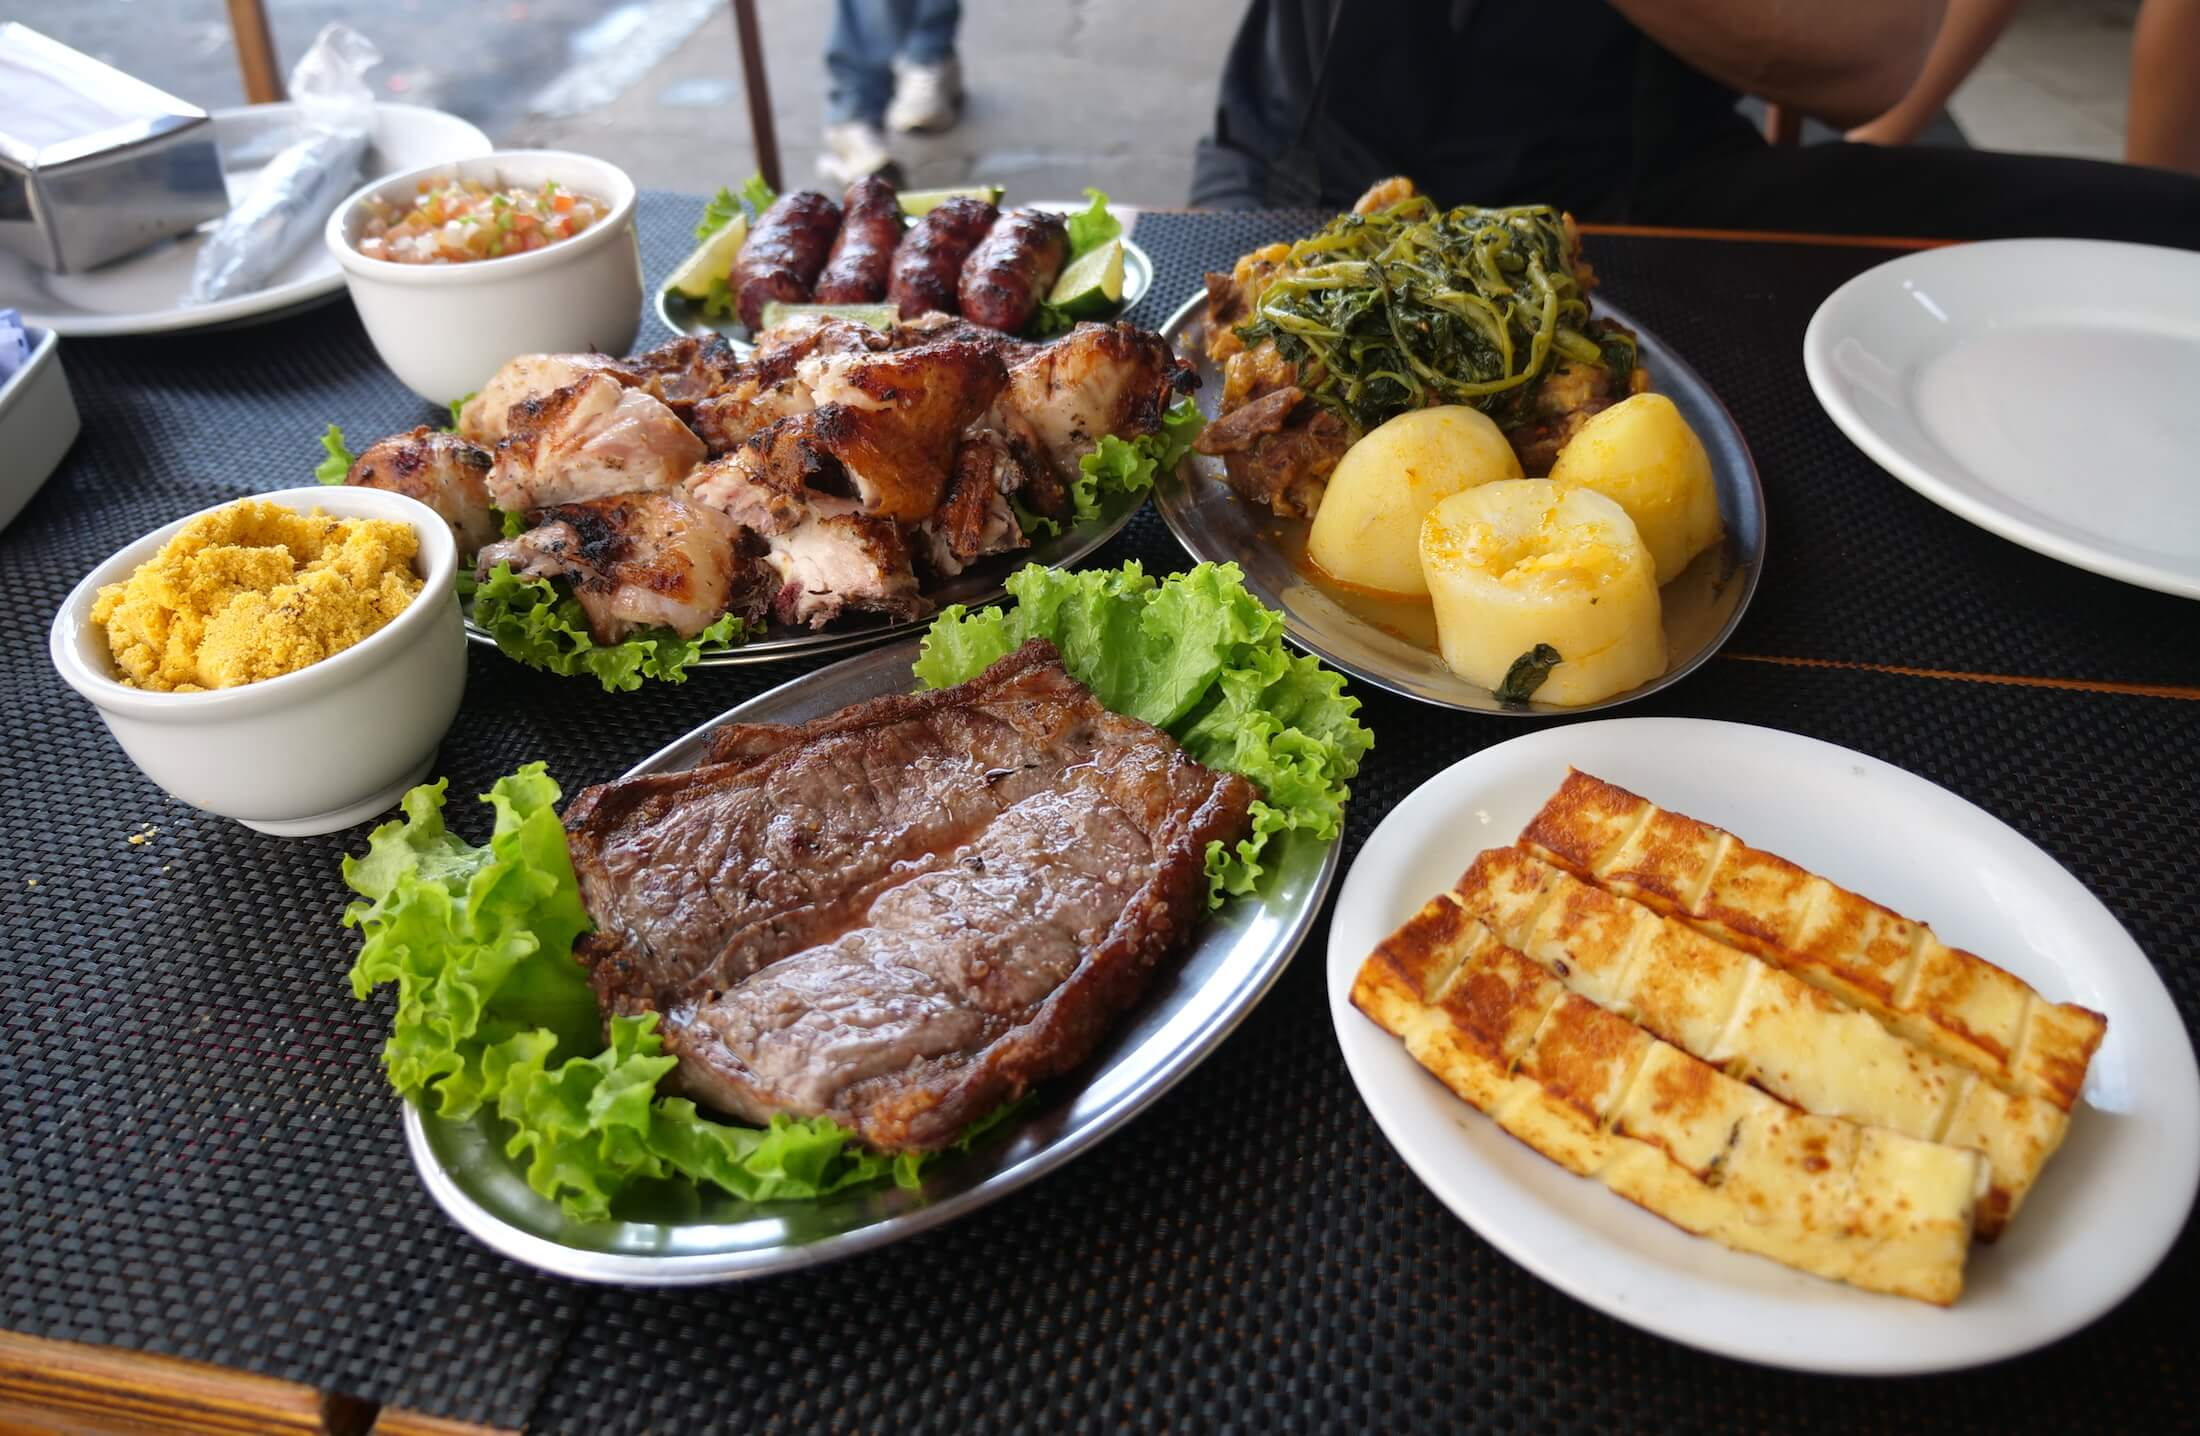 Worth visiting Rio just for the food, Bar Cafe Rex serves some delicious meats, snacks, and beverages for your mid day meal